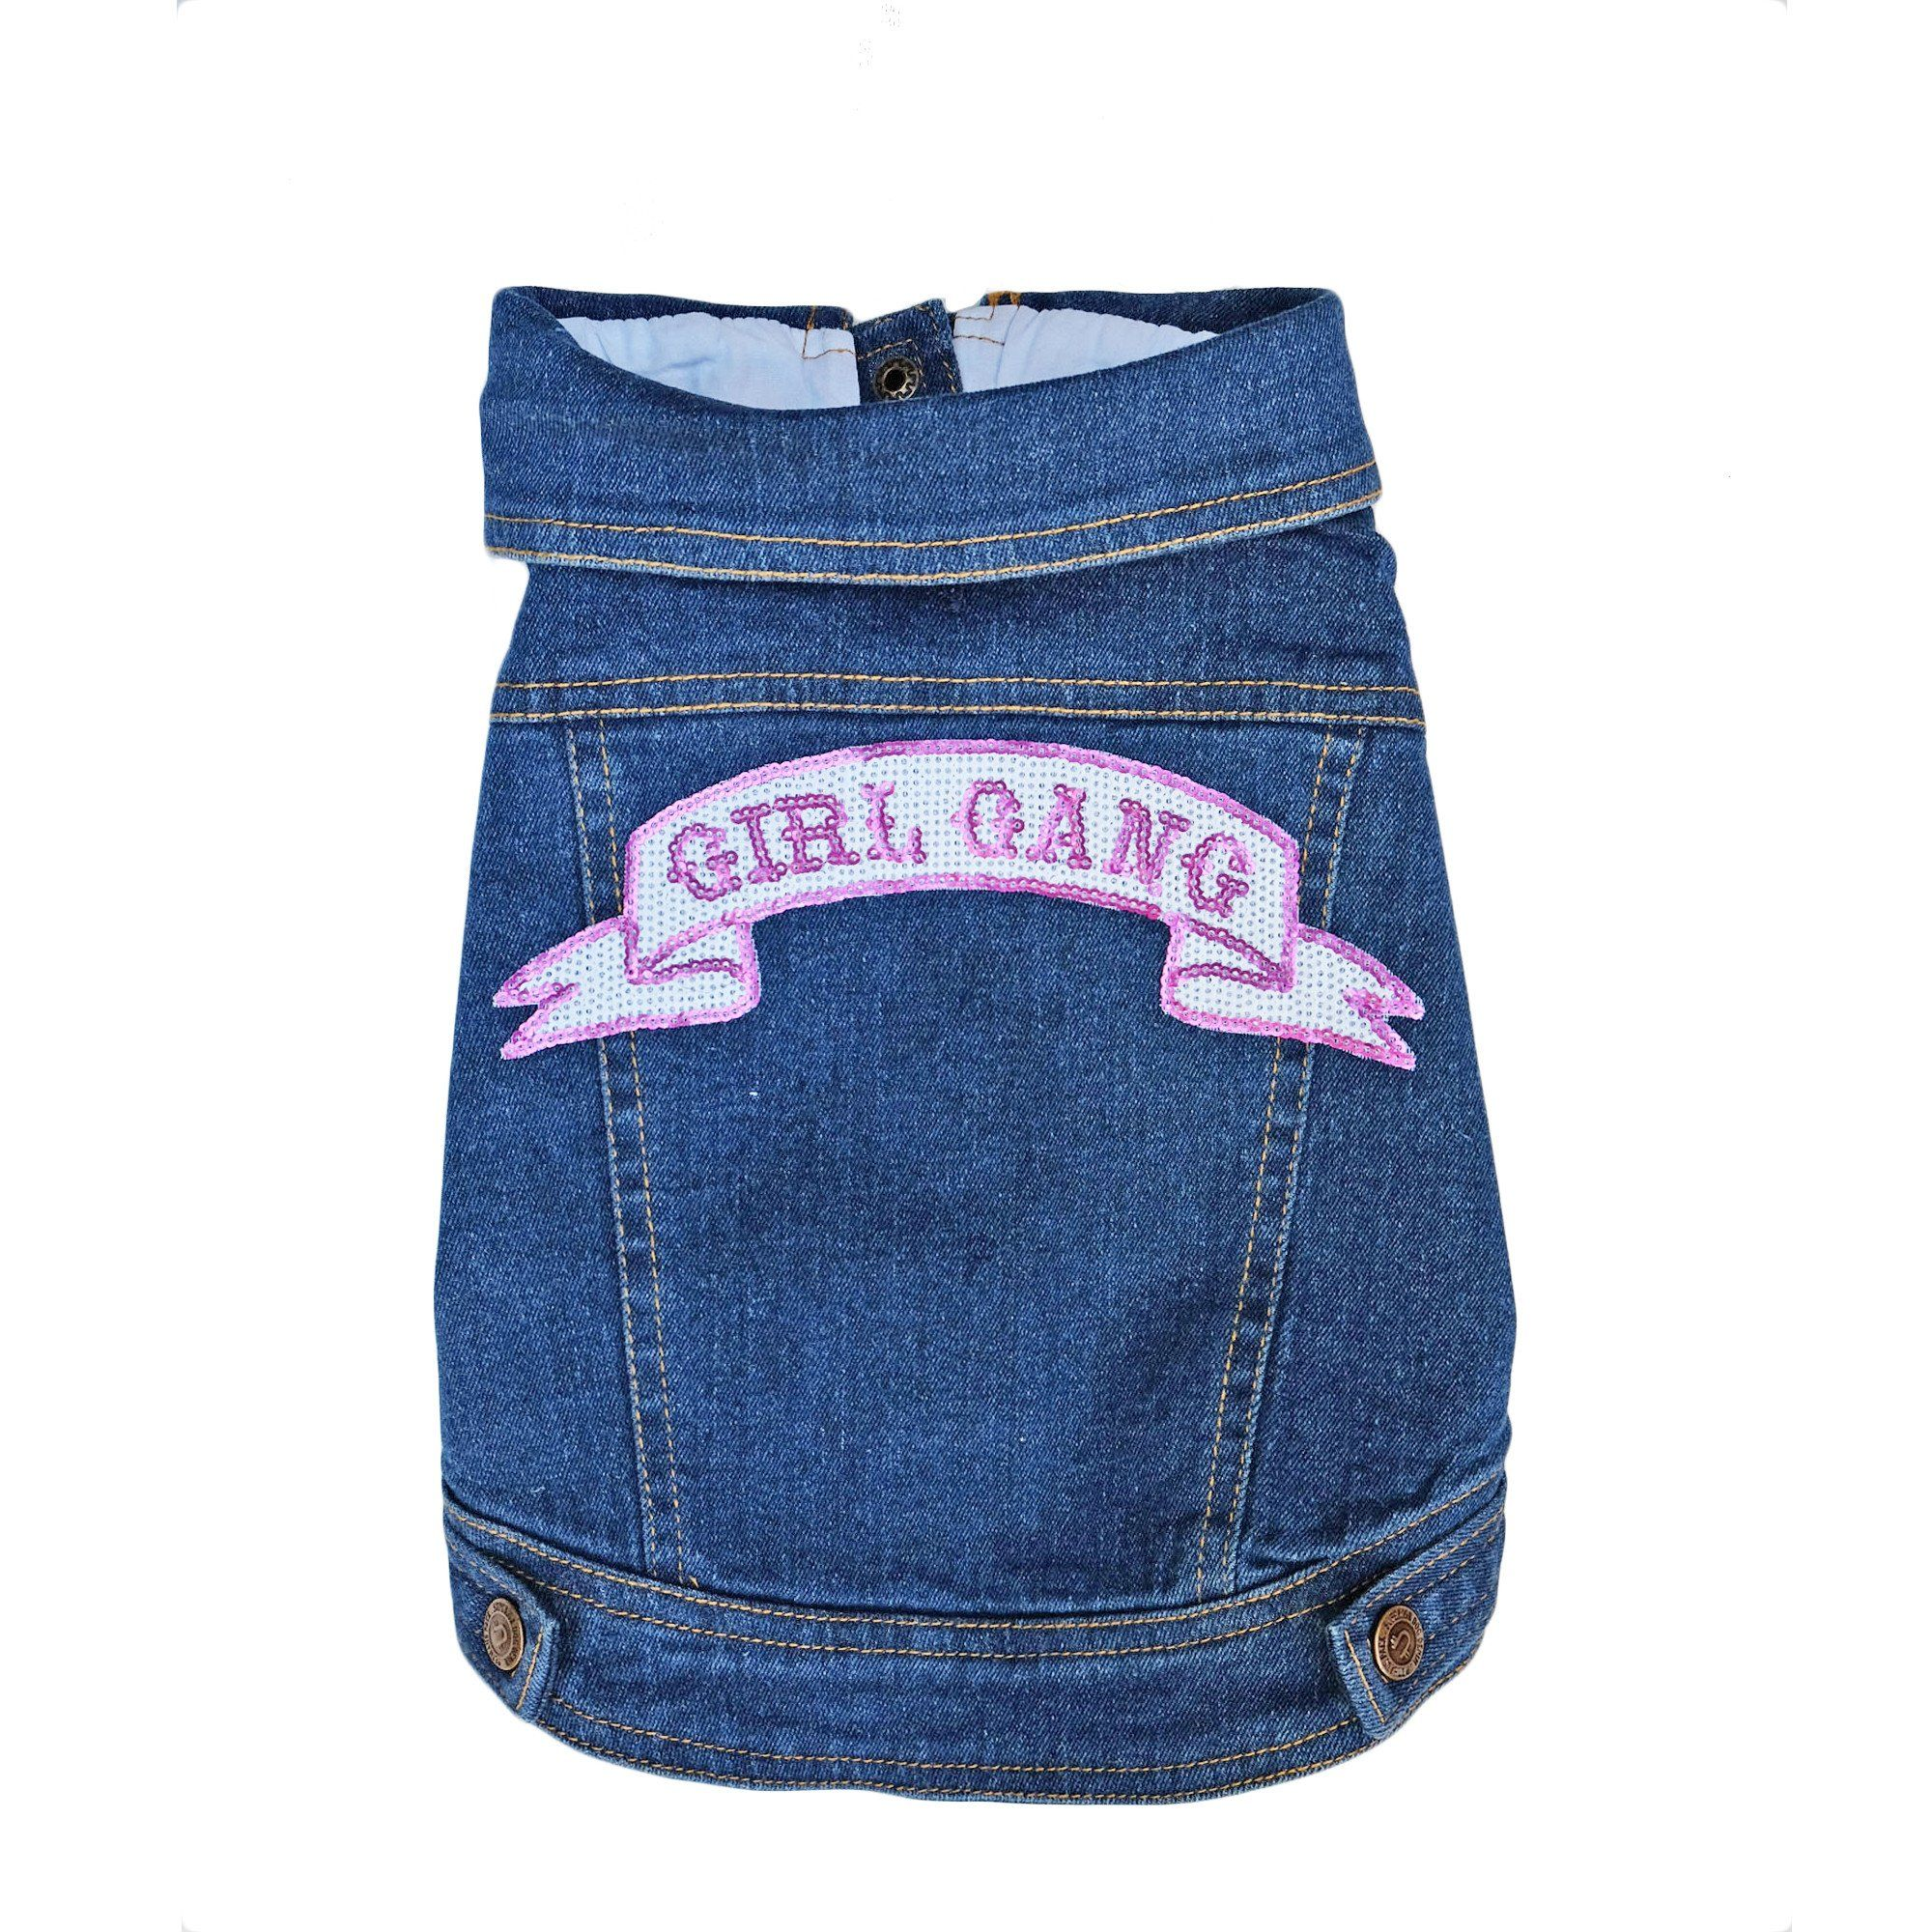 Denim Dog Vest, Denim Dog Jacket, Girl Gang Denim Dog Vest, Pethaus